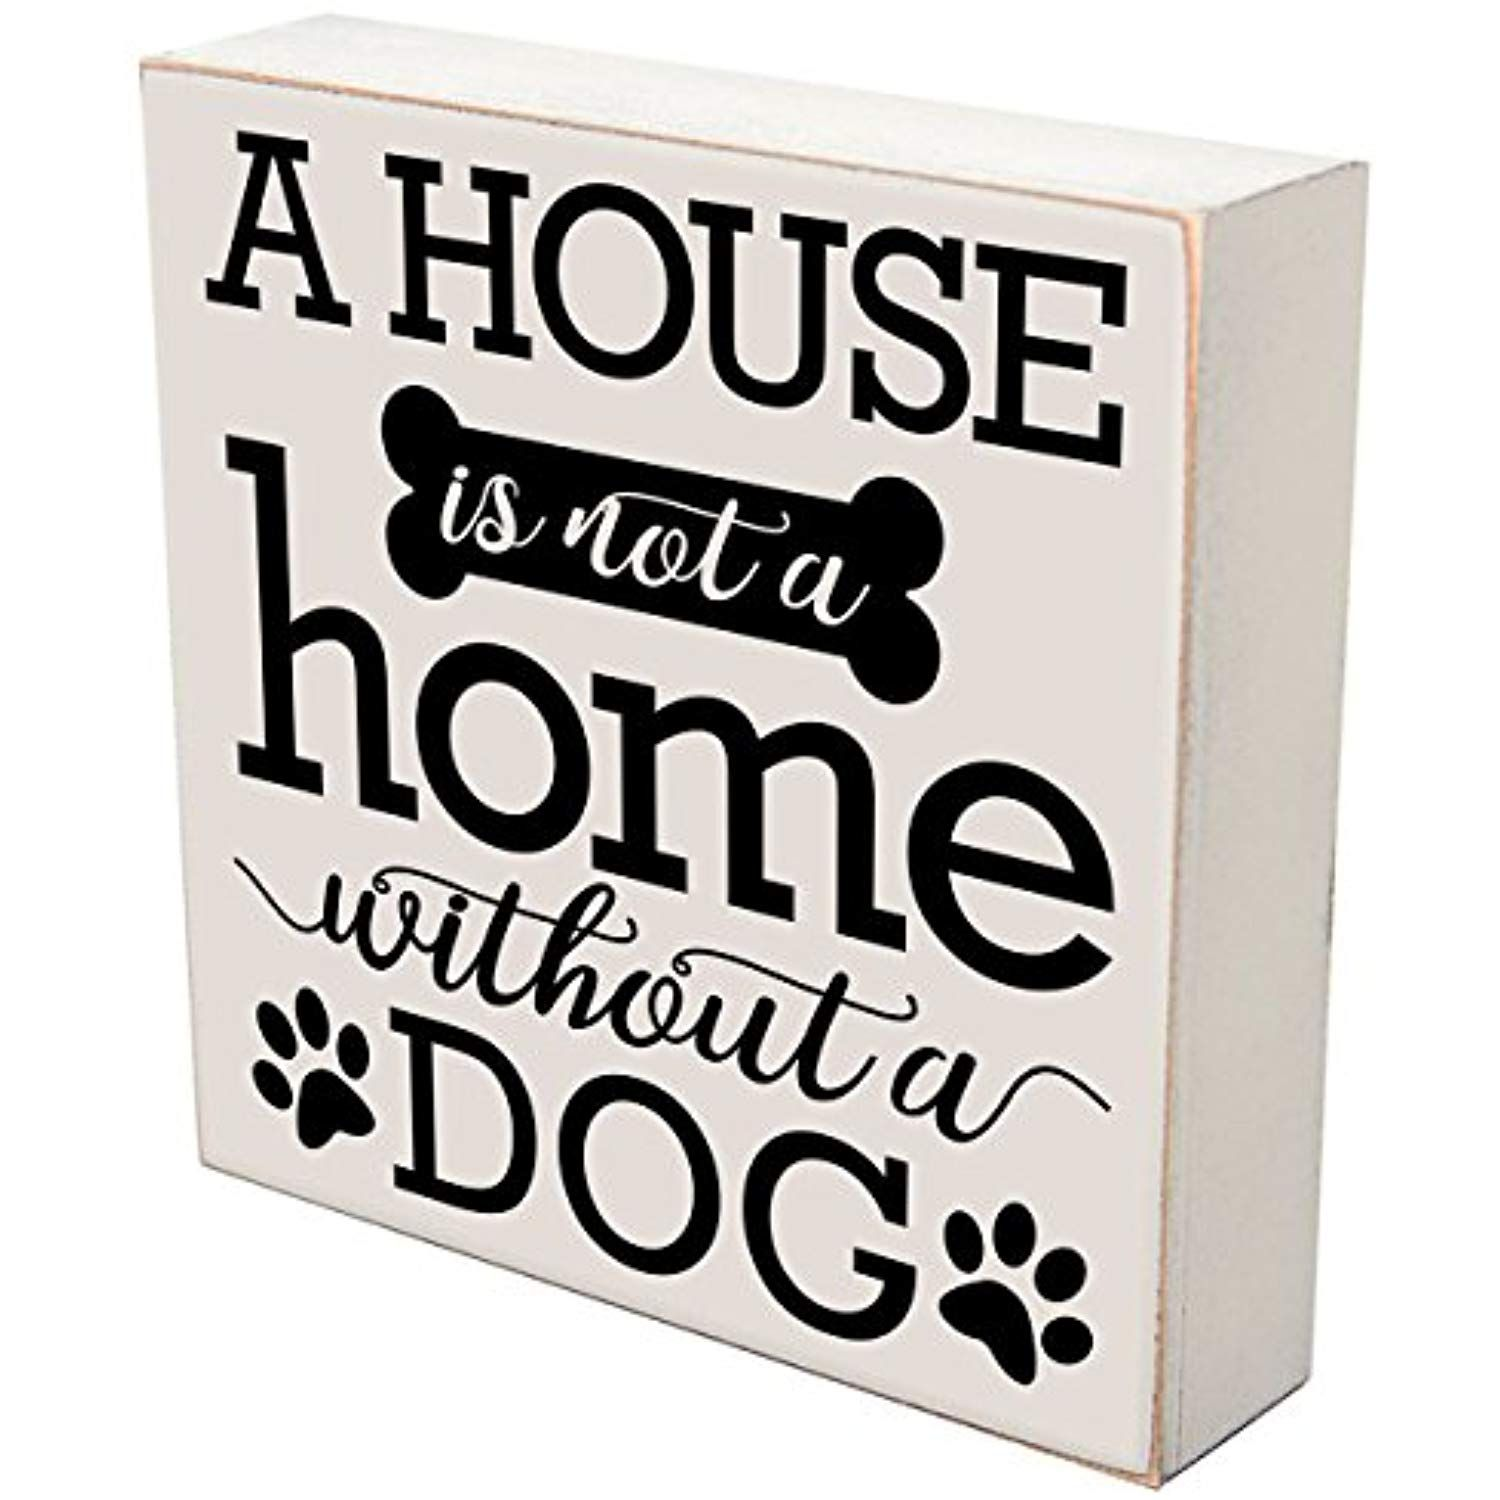 A House Is Not A Home Without A Dog Gifts For Dog Cat Pet Lover